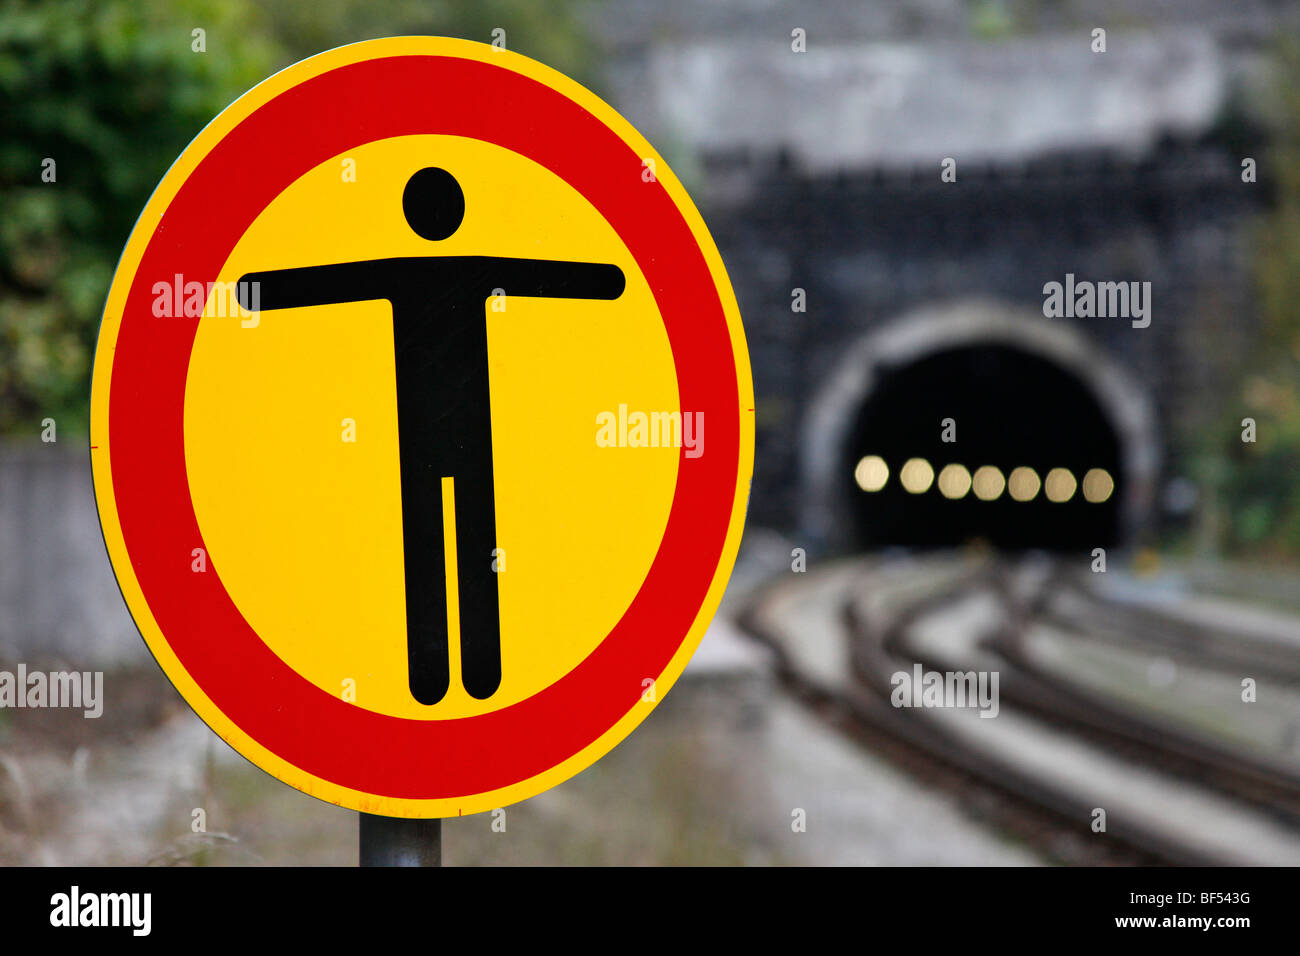 Sign with the warning symbol, No Entry, on Oberhof railway station, Thuringia, Germany, Europe - Stock Image